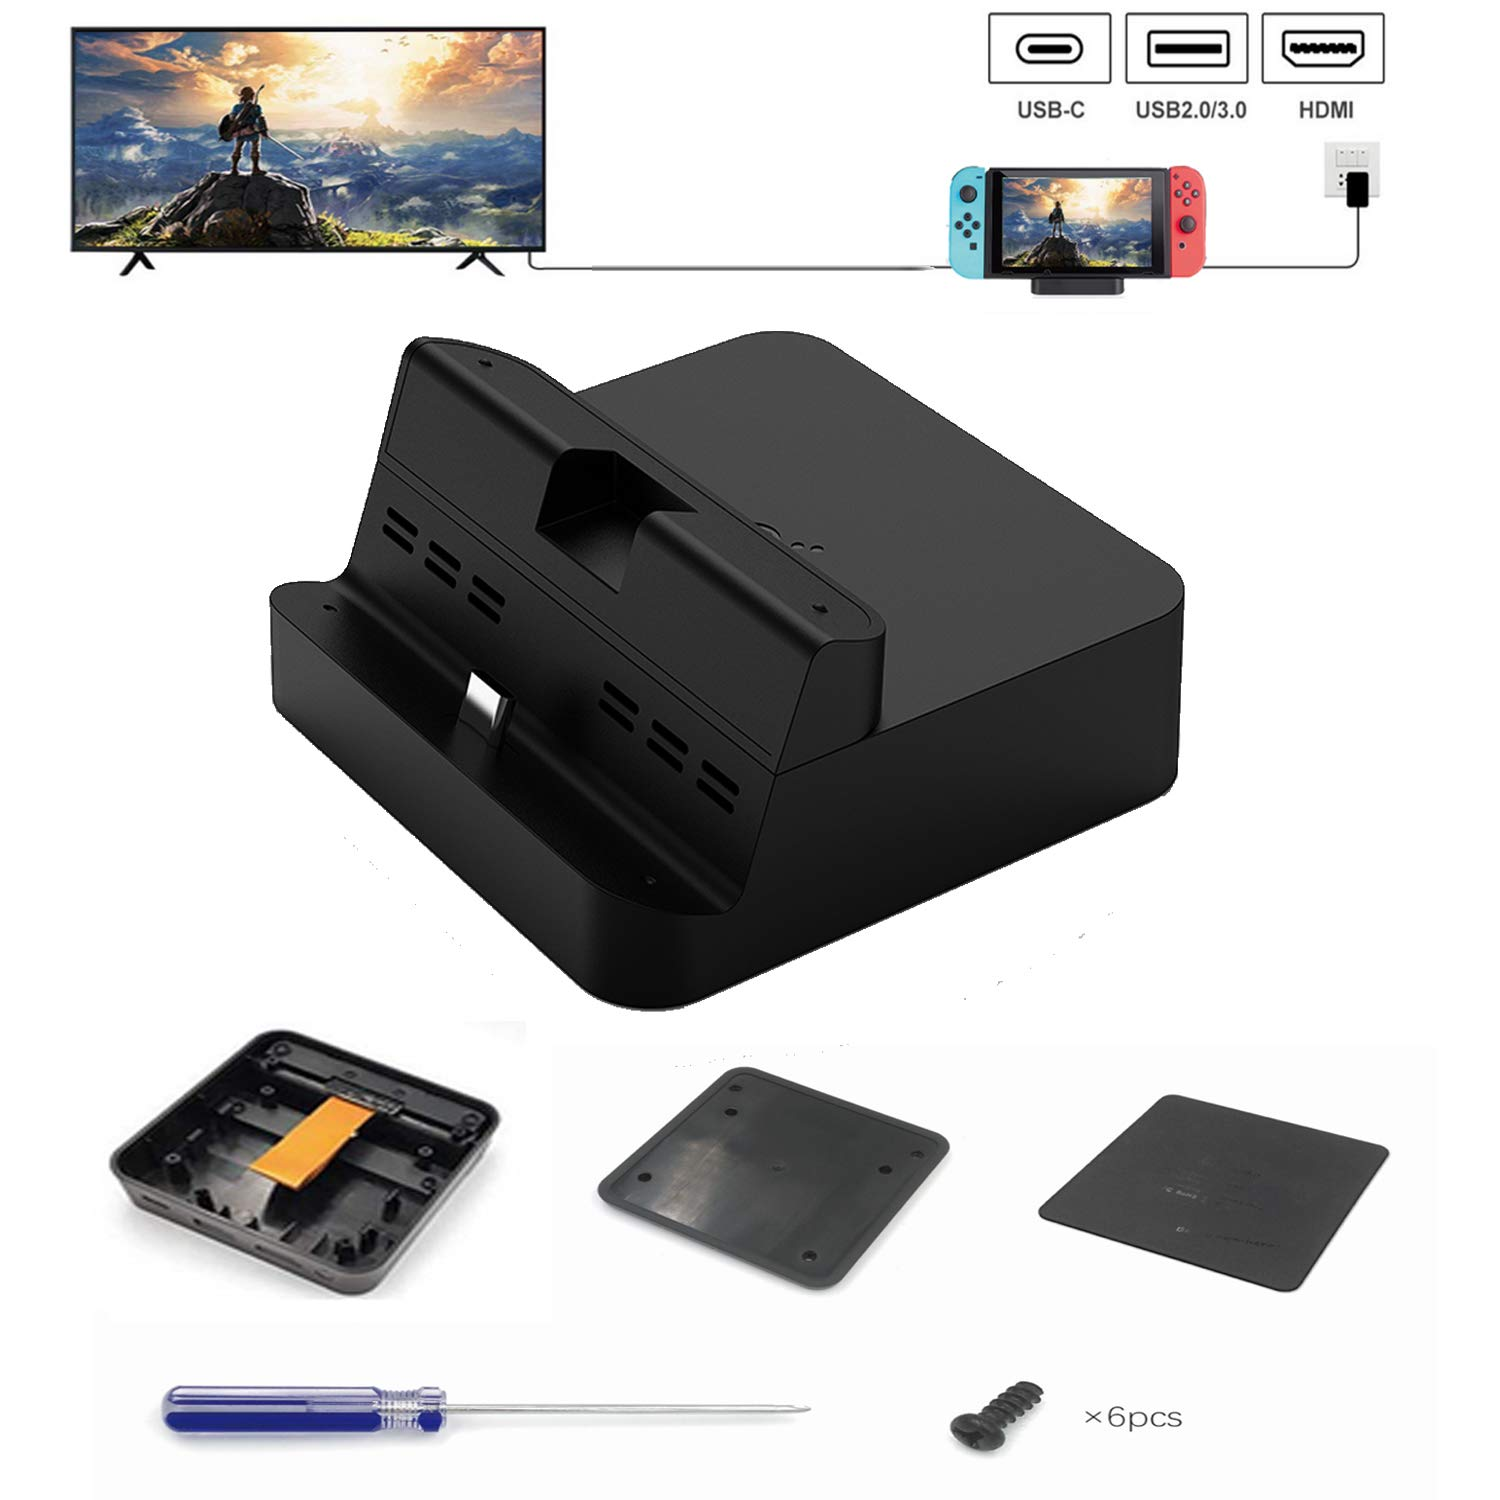 Kuxiu Gulikit Portable DIY Switch Dock Set Replacement Case Kit Compatible for Nintendo Switch, All Necessary Accessories Included Except Circuit Board Chip by KU XIU